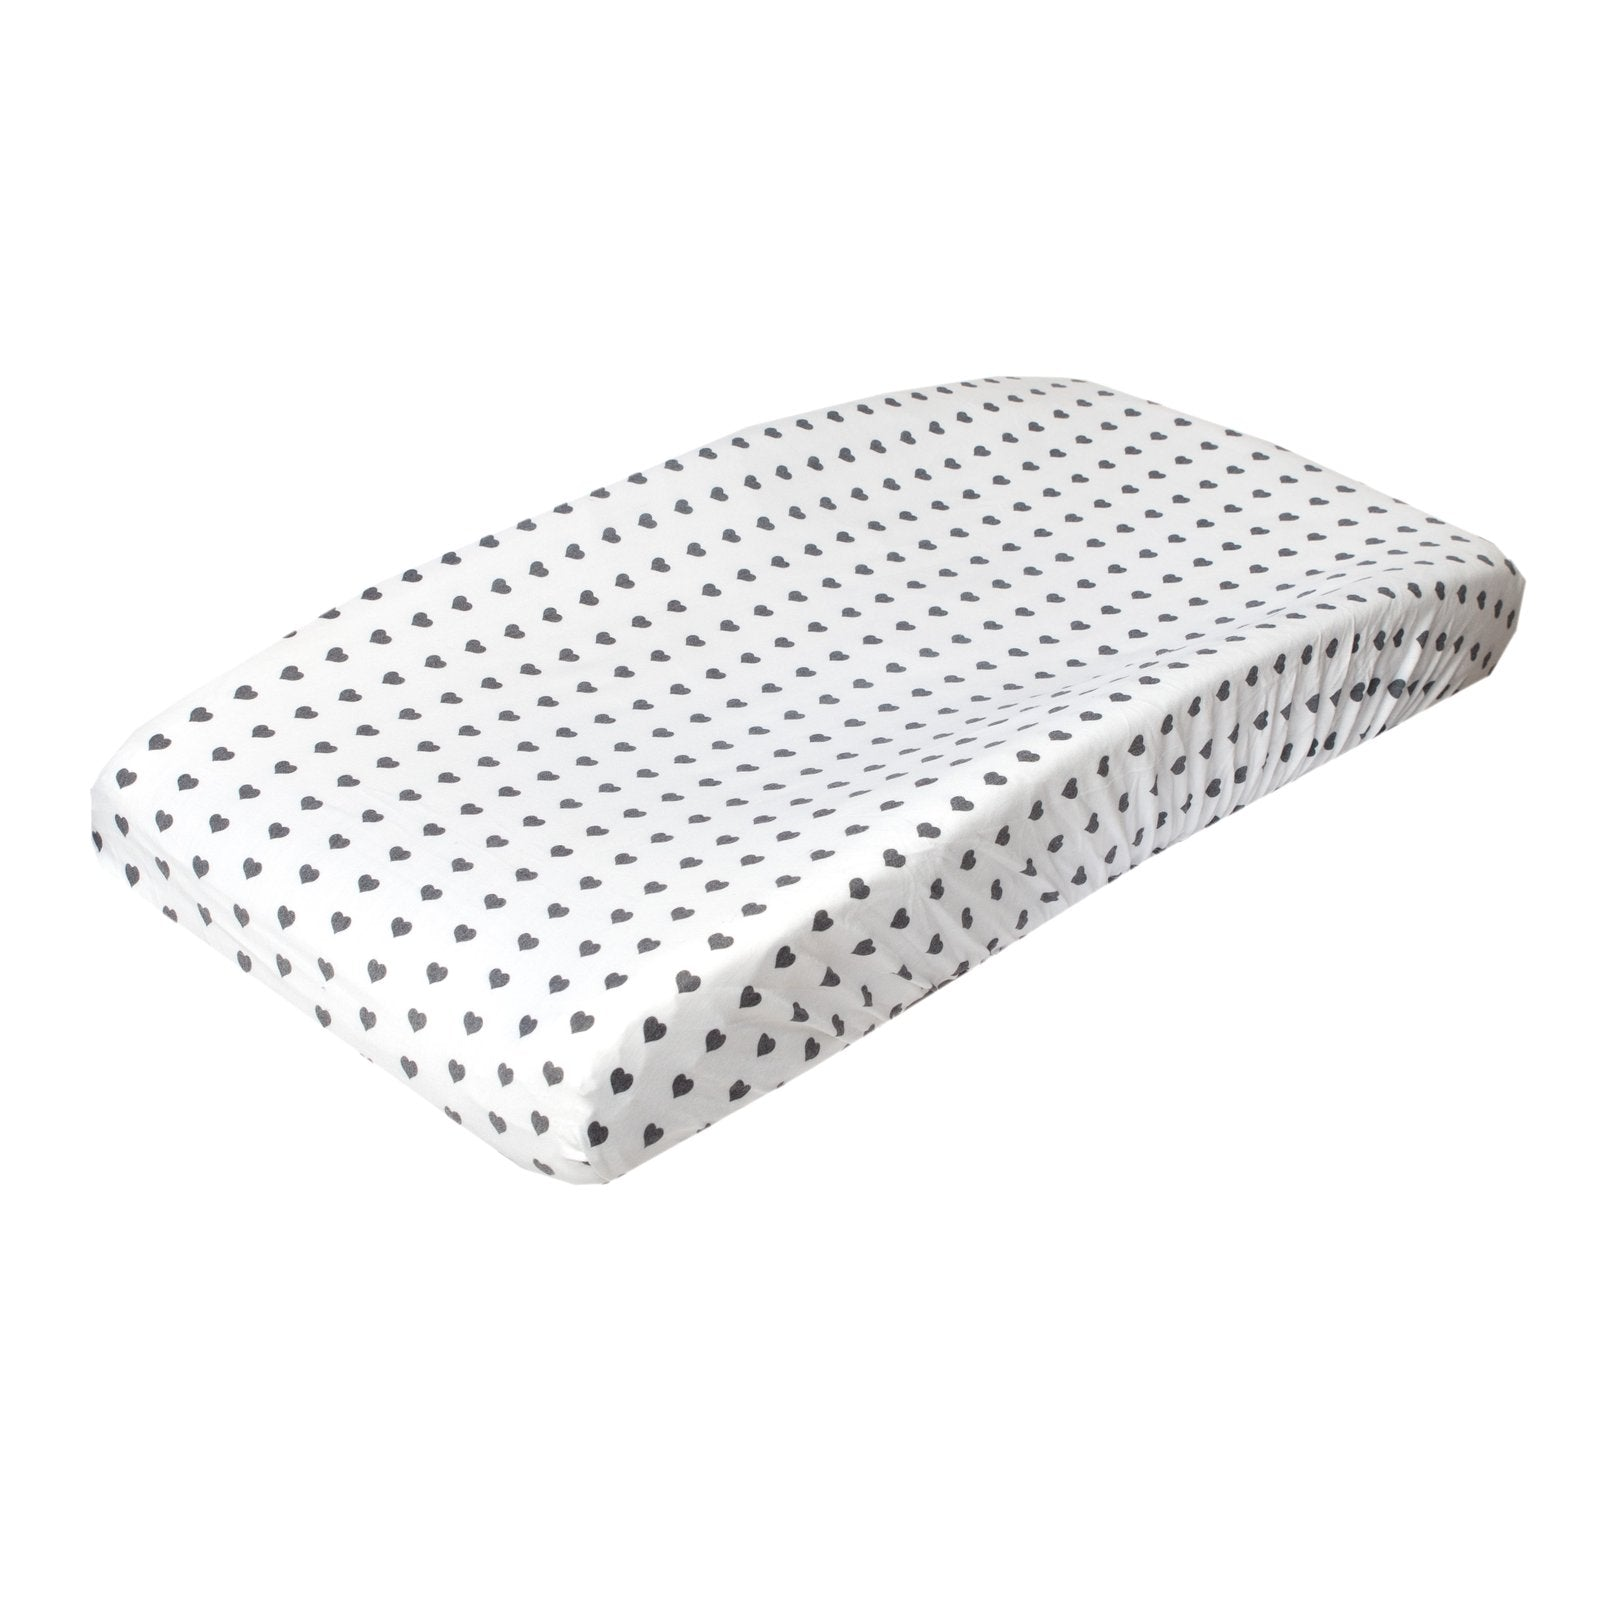 Changing Pad Cover-Smitten